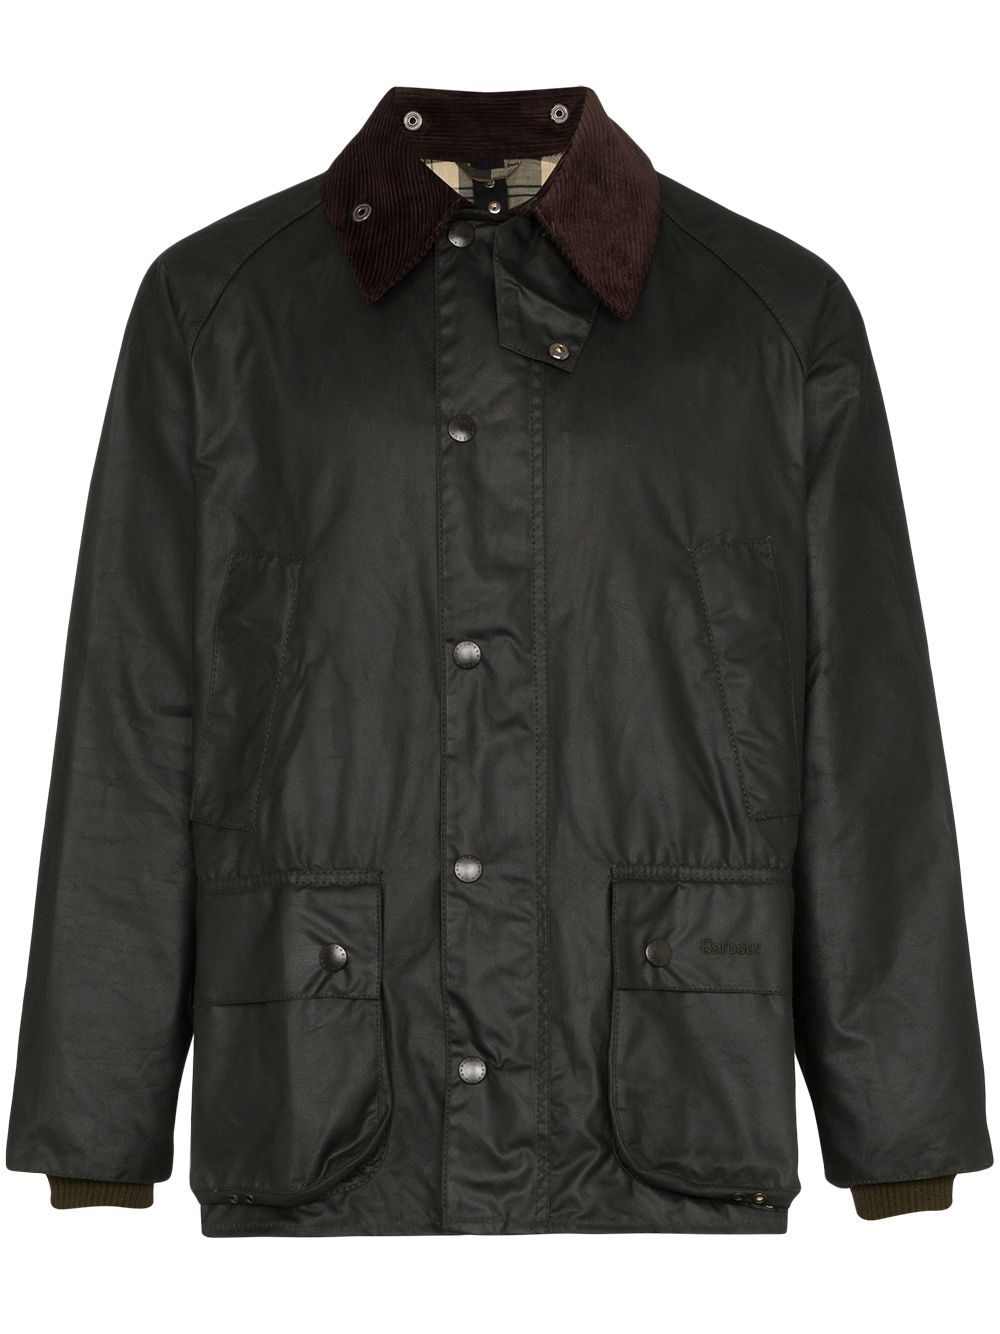 giacca bedale uomo nera in cotone BARBOUR   Giacche   MWX0018SG91